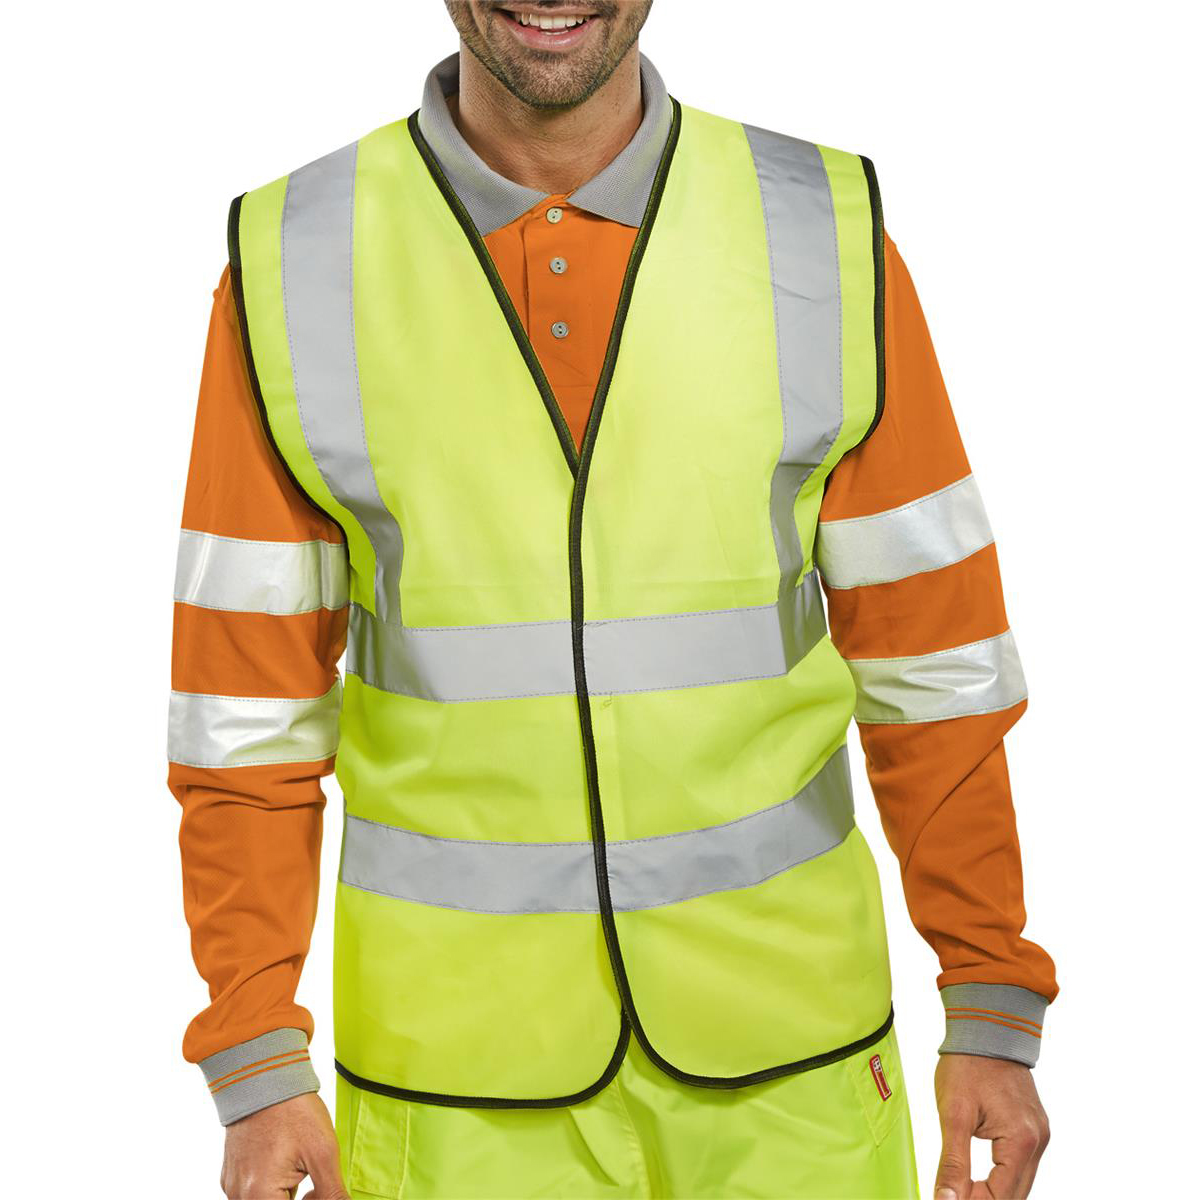 Bodywarmers Bseen High Visibility Waistcoat Full App XL Yellow/Black Piping Ref WCENGXL *Up to 3 Day Leadtime*